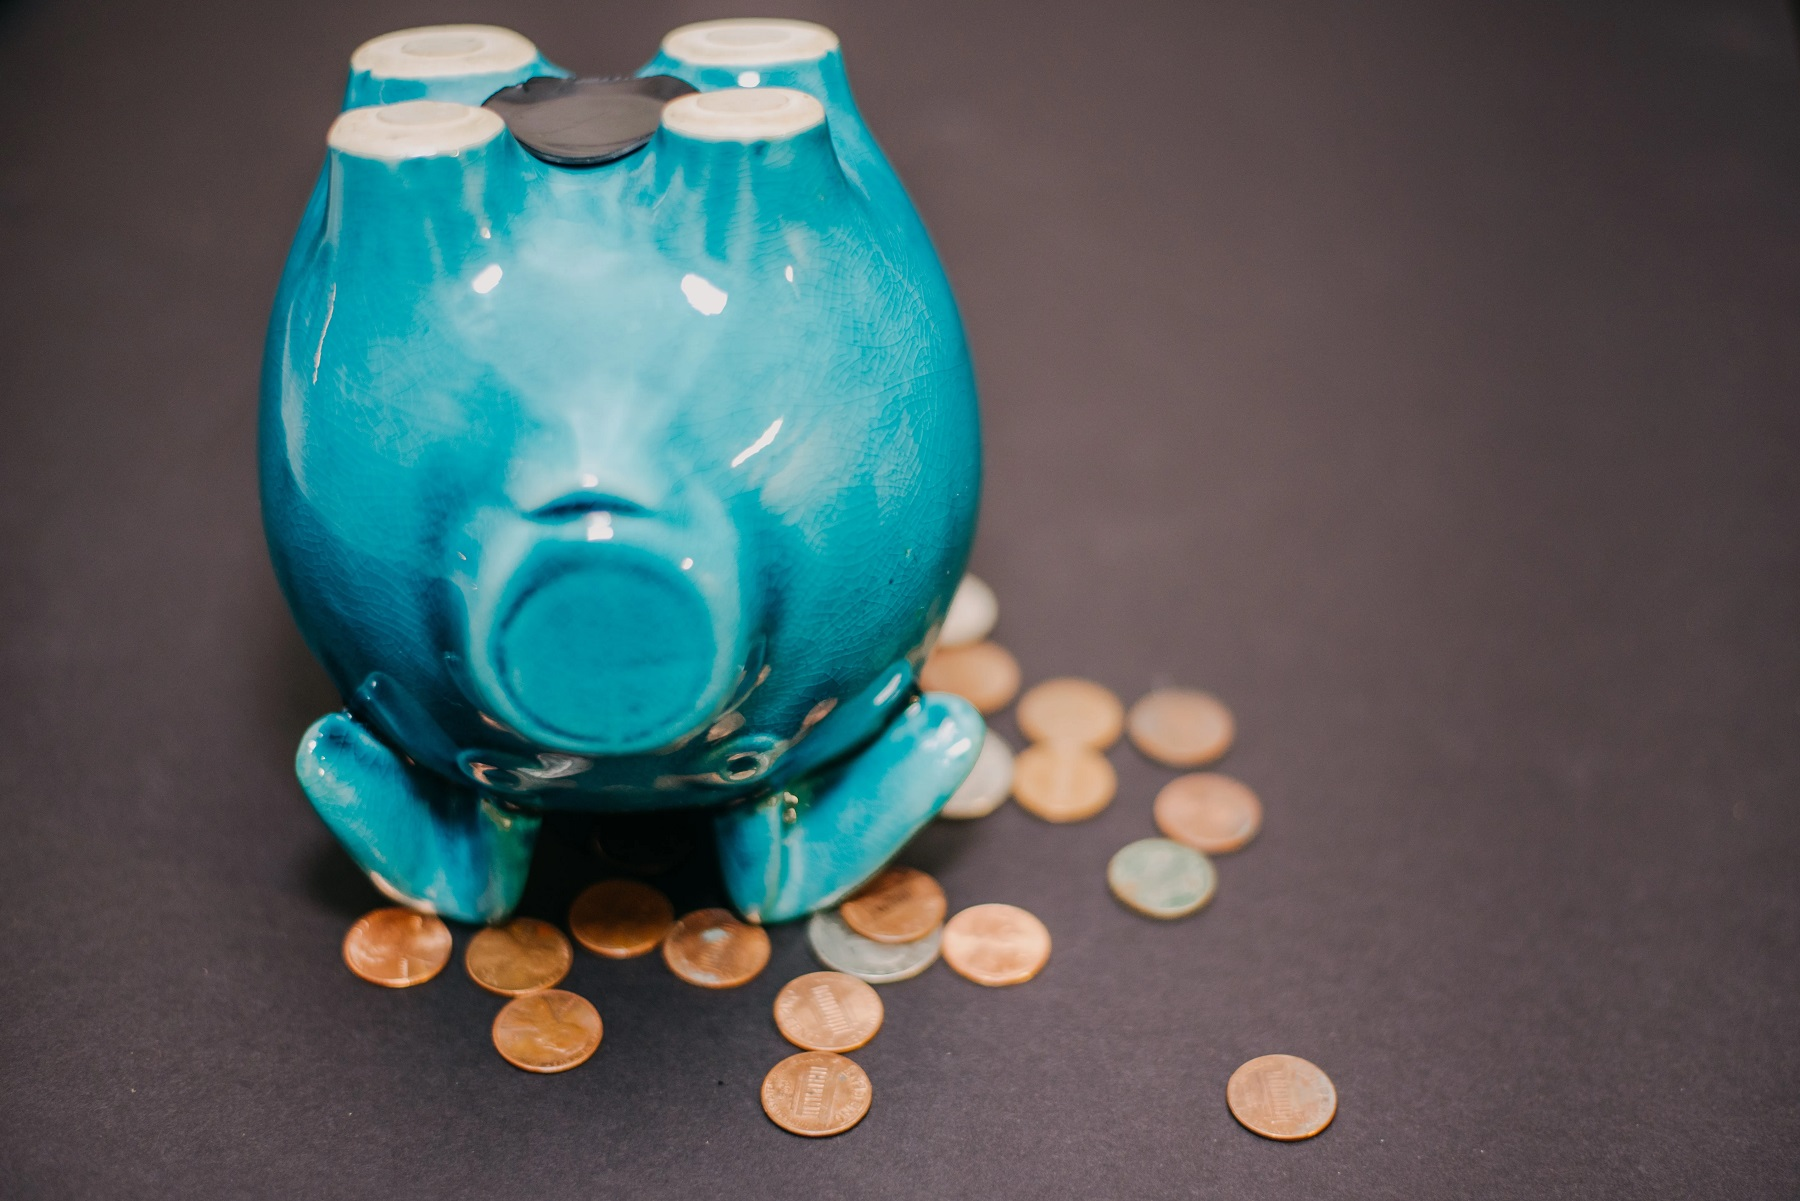 upside-down-piggy-bank-with-money-DHQ84Z7